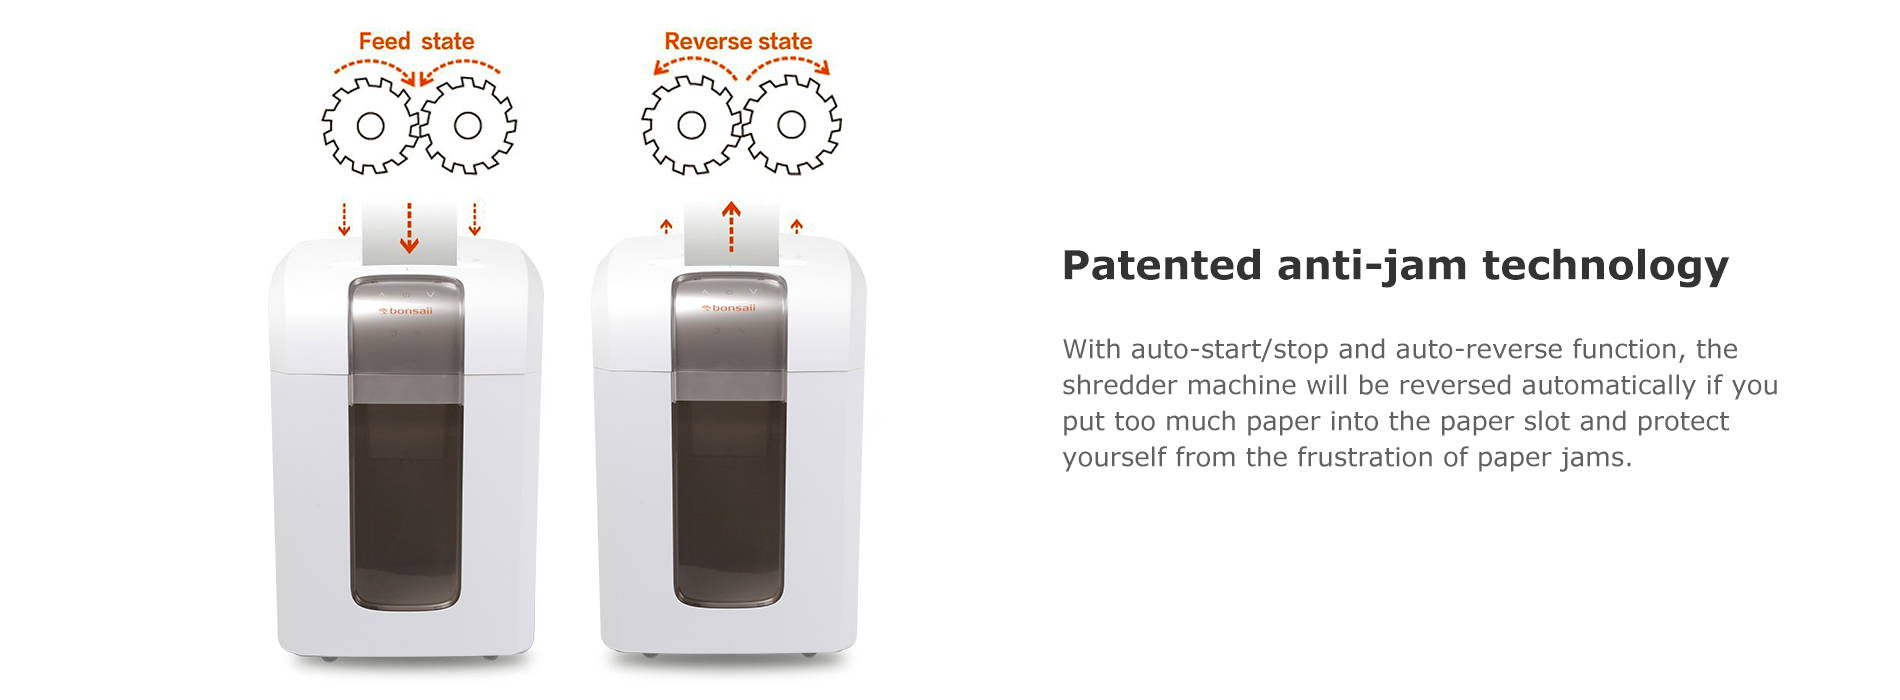 Patented anti-jam technology With auto-start/stop and auto-reverse function, the shredder machine will be reversed automatically if you put too much paper into the paper slot and protect yourself from the frustration of paper jams.